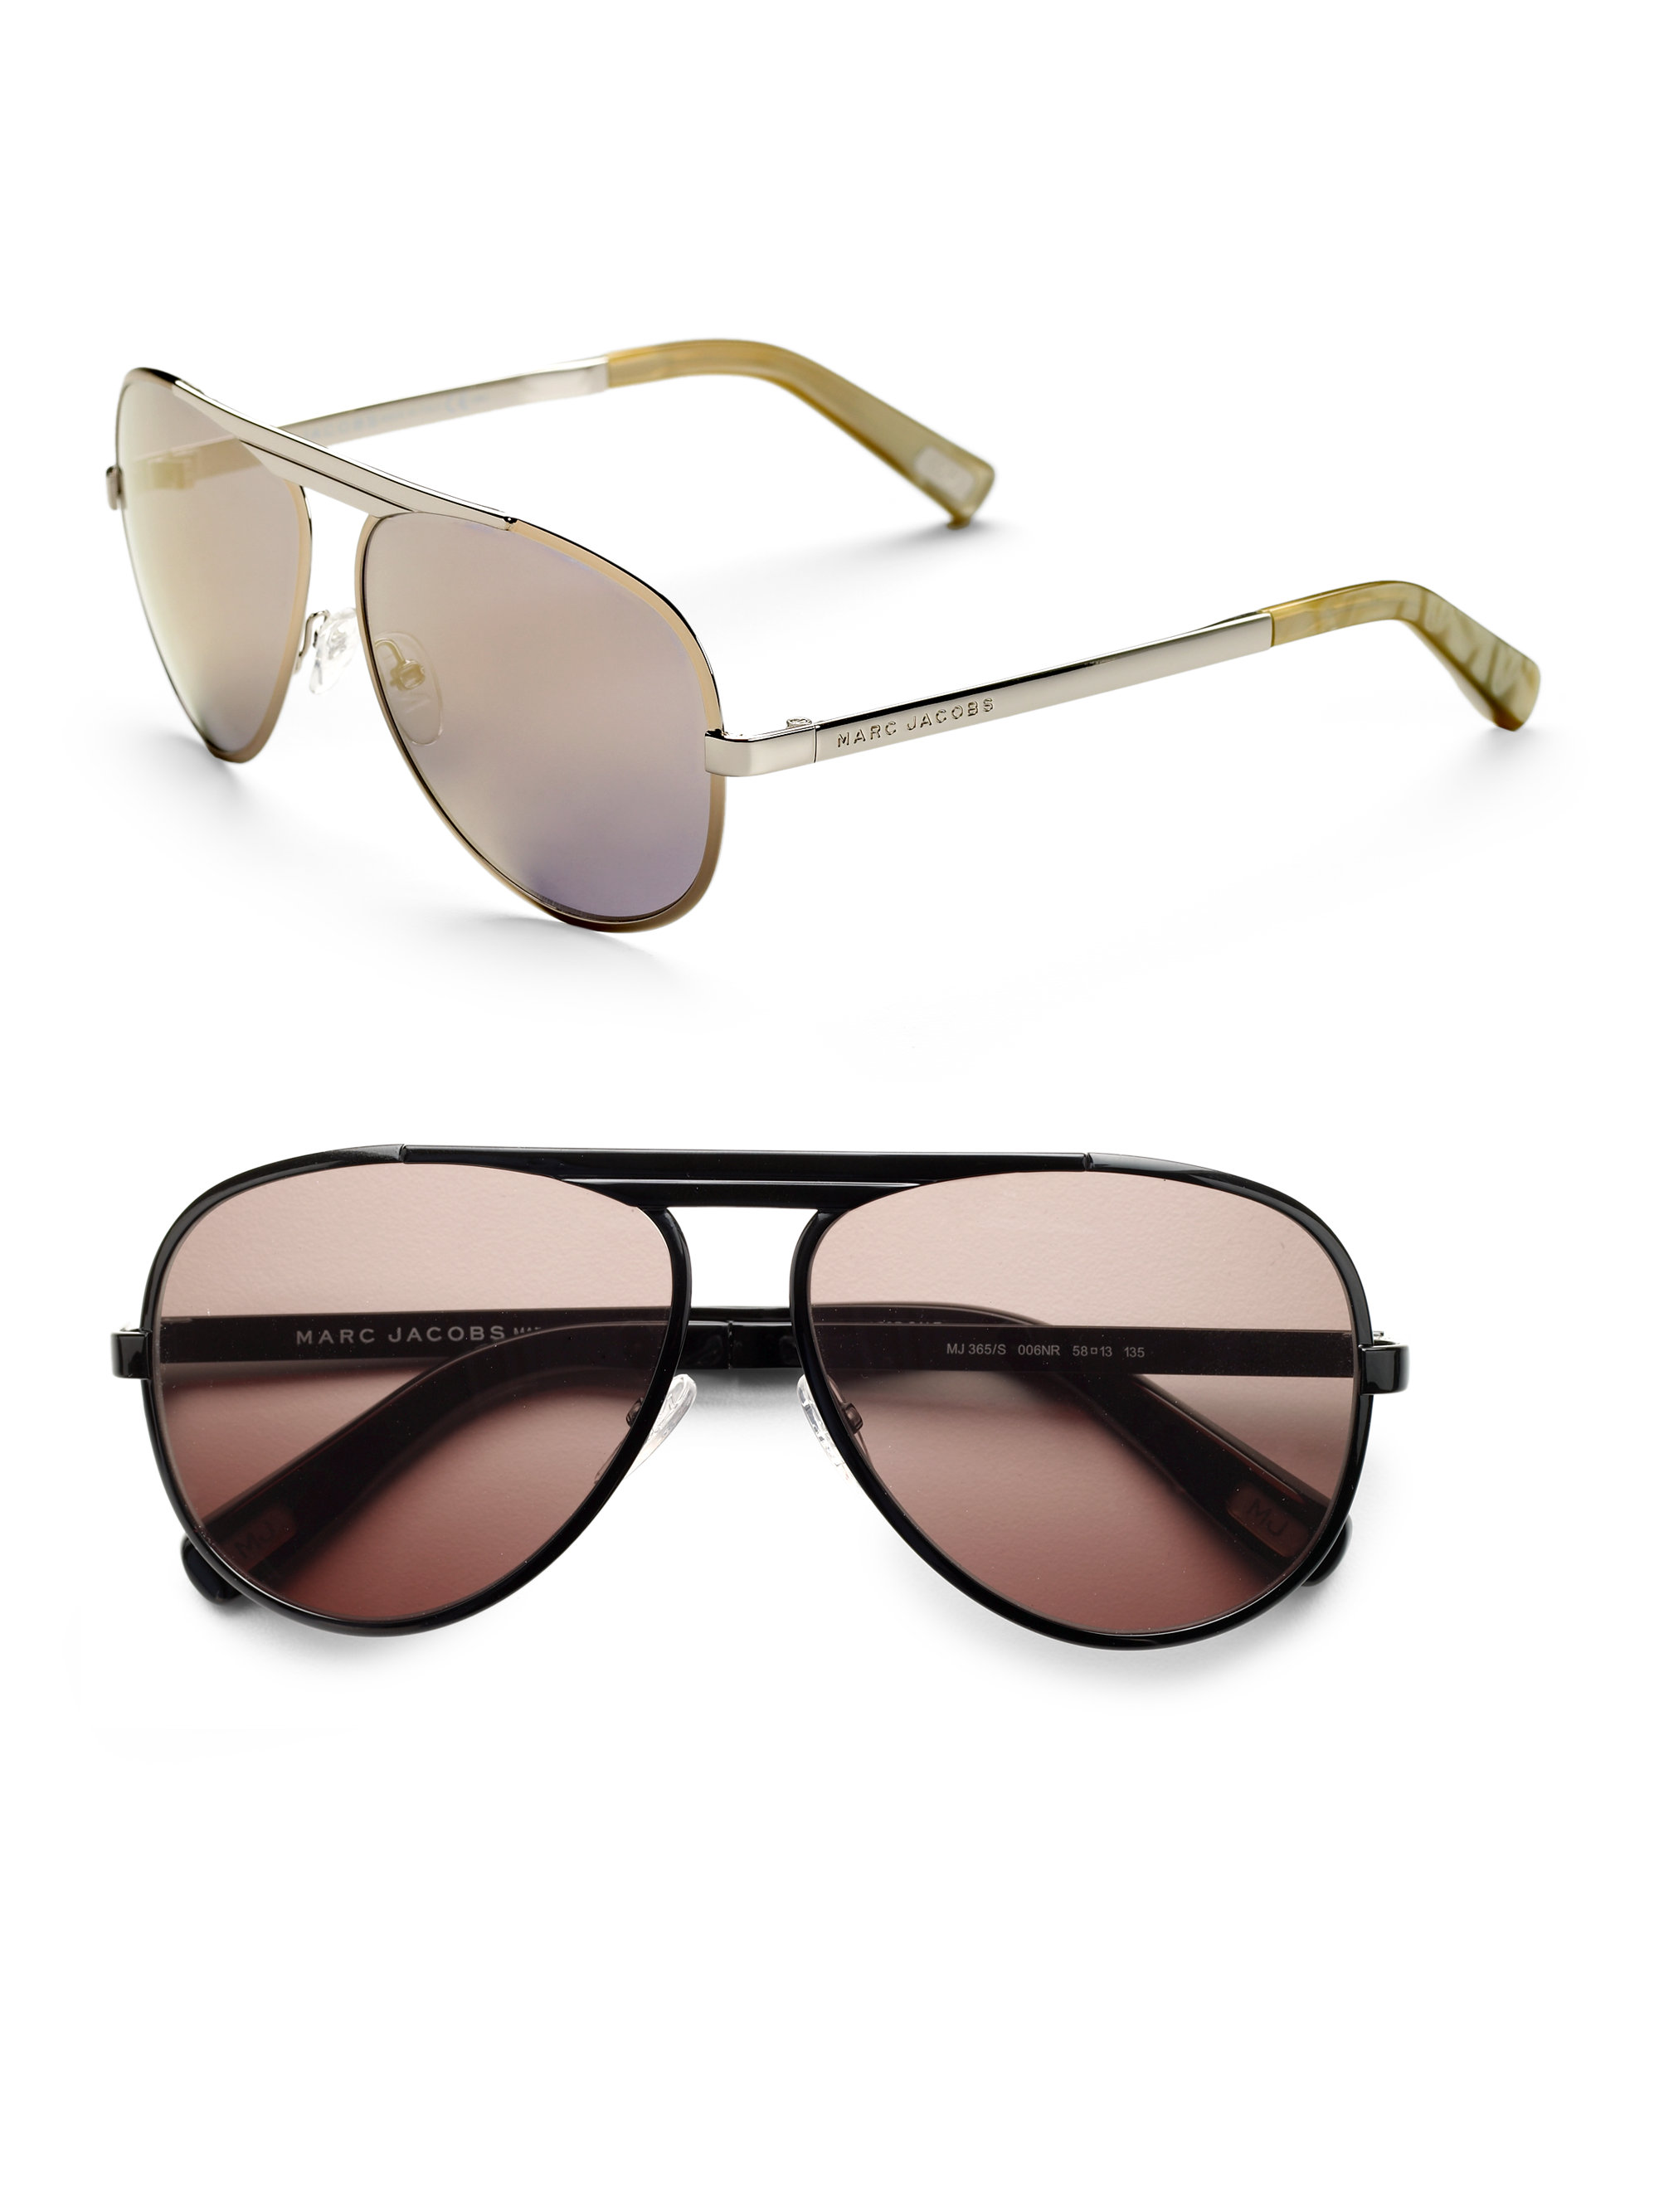 Marc Jacobs Gold Frame Sunglasses : Marc jacobs Metal Aviator Sunglasses in Gold for Men Lyst